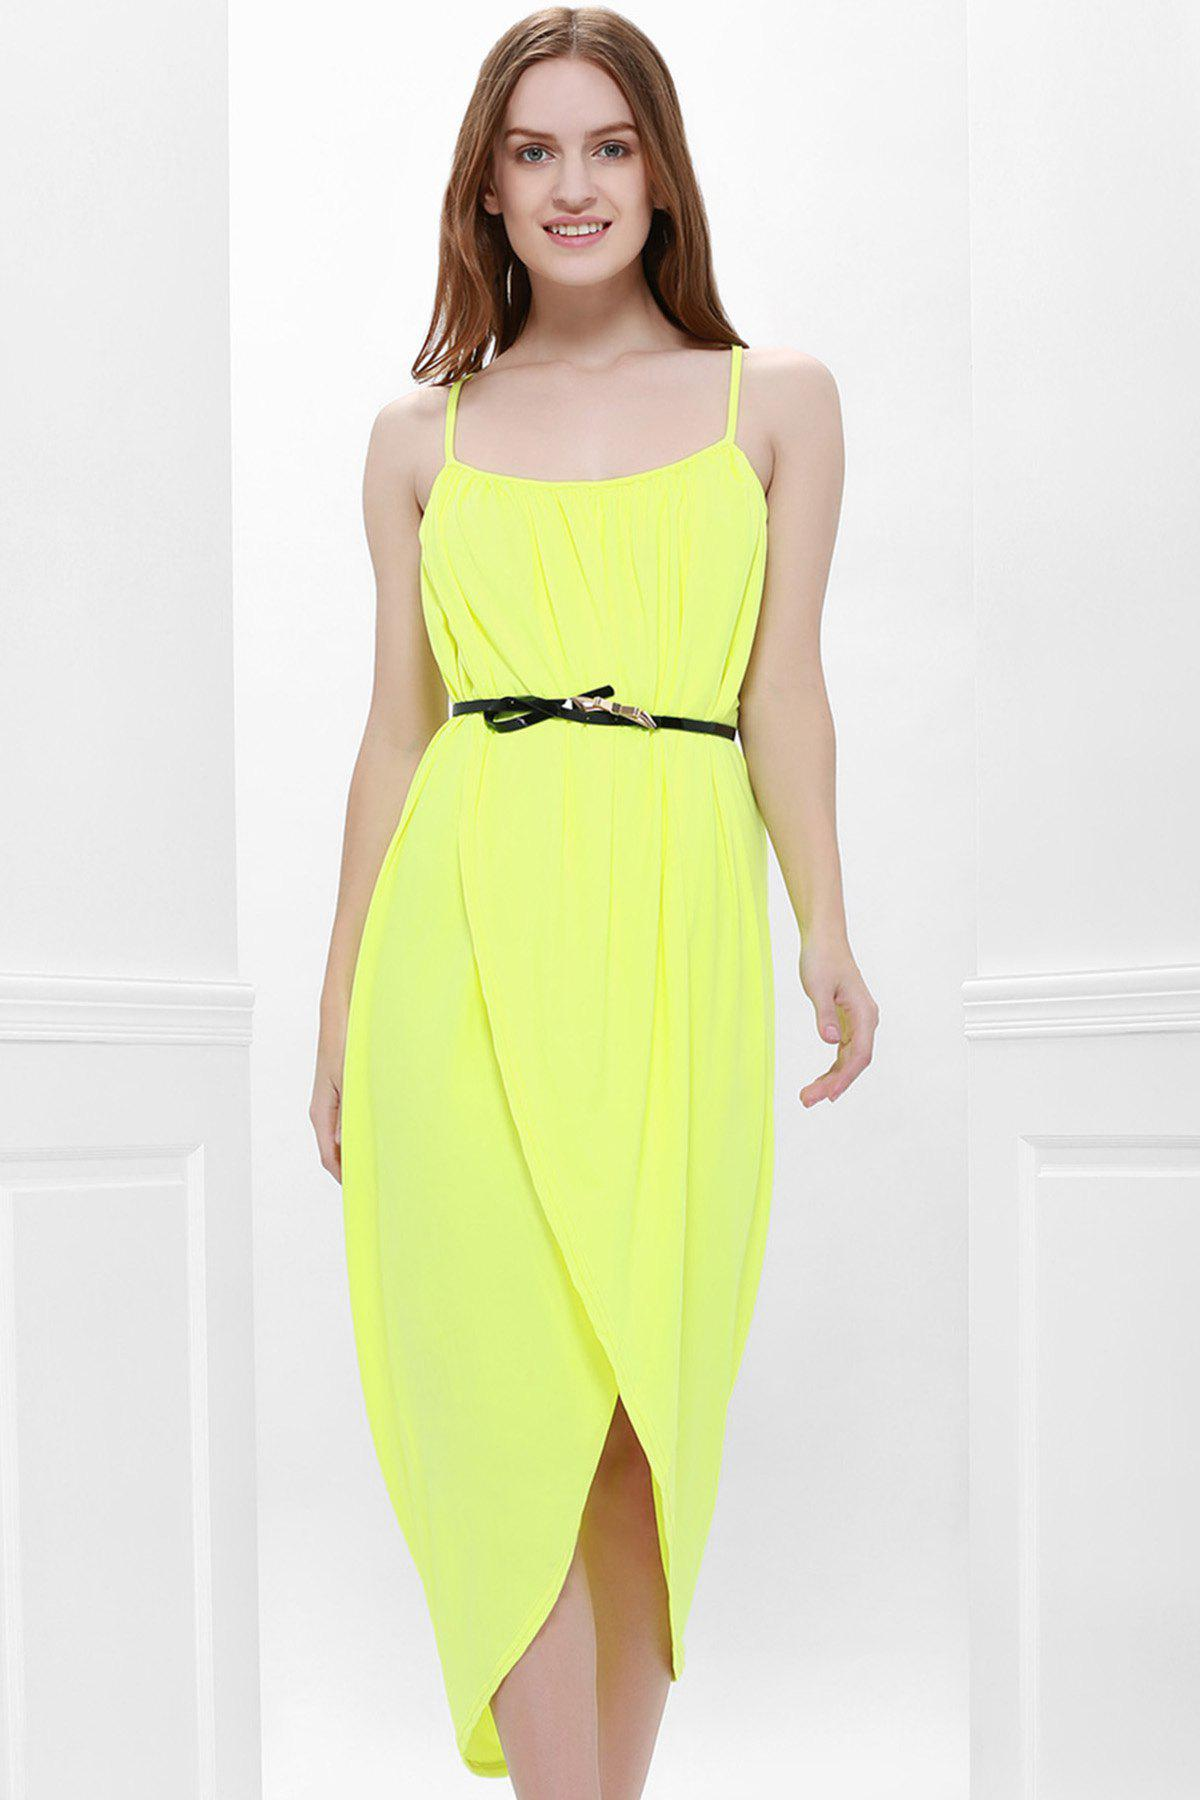 Trendy Sexy Spaghetti Strap Sleeveless Solid Color Furcal Women's Dress